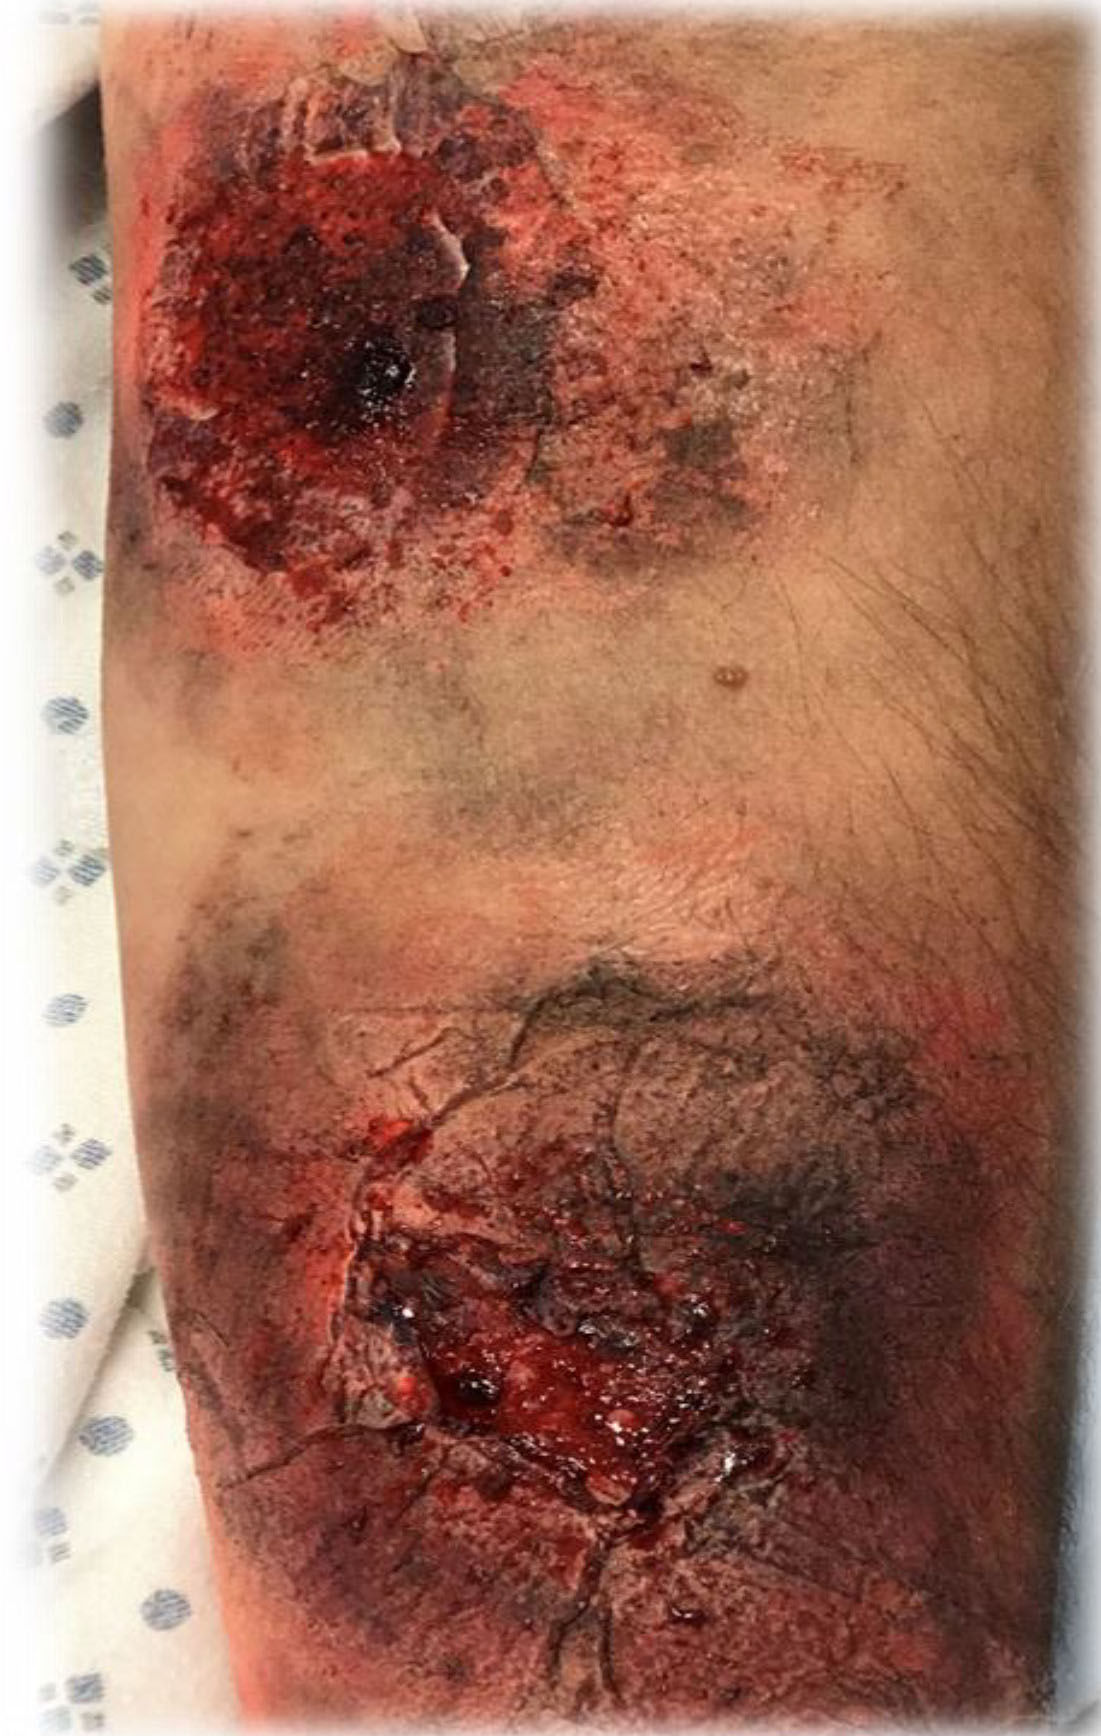 Moulage on arm